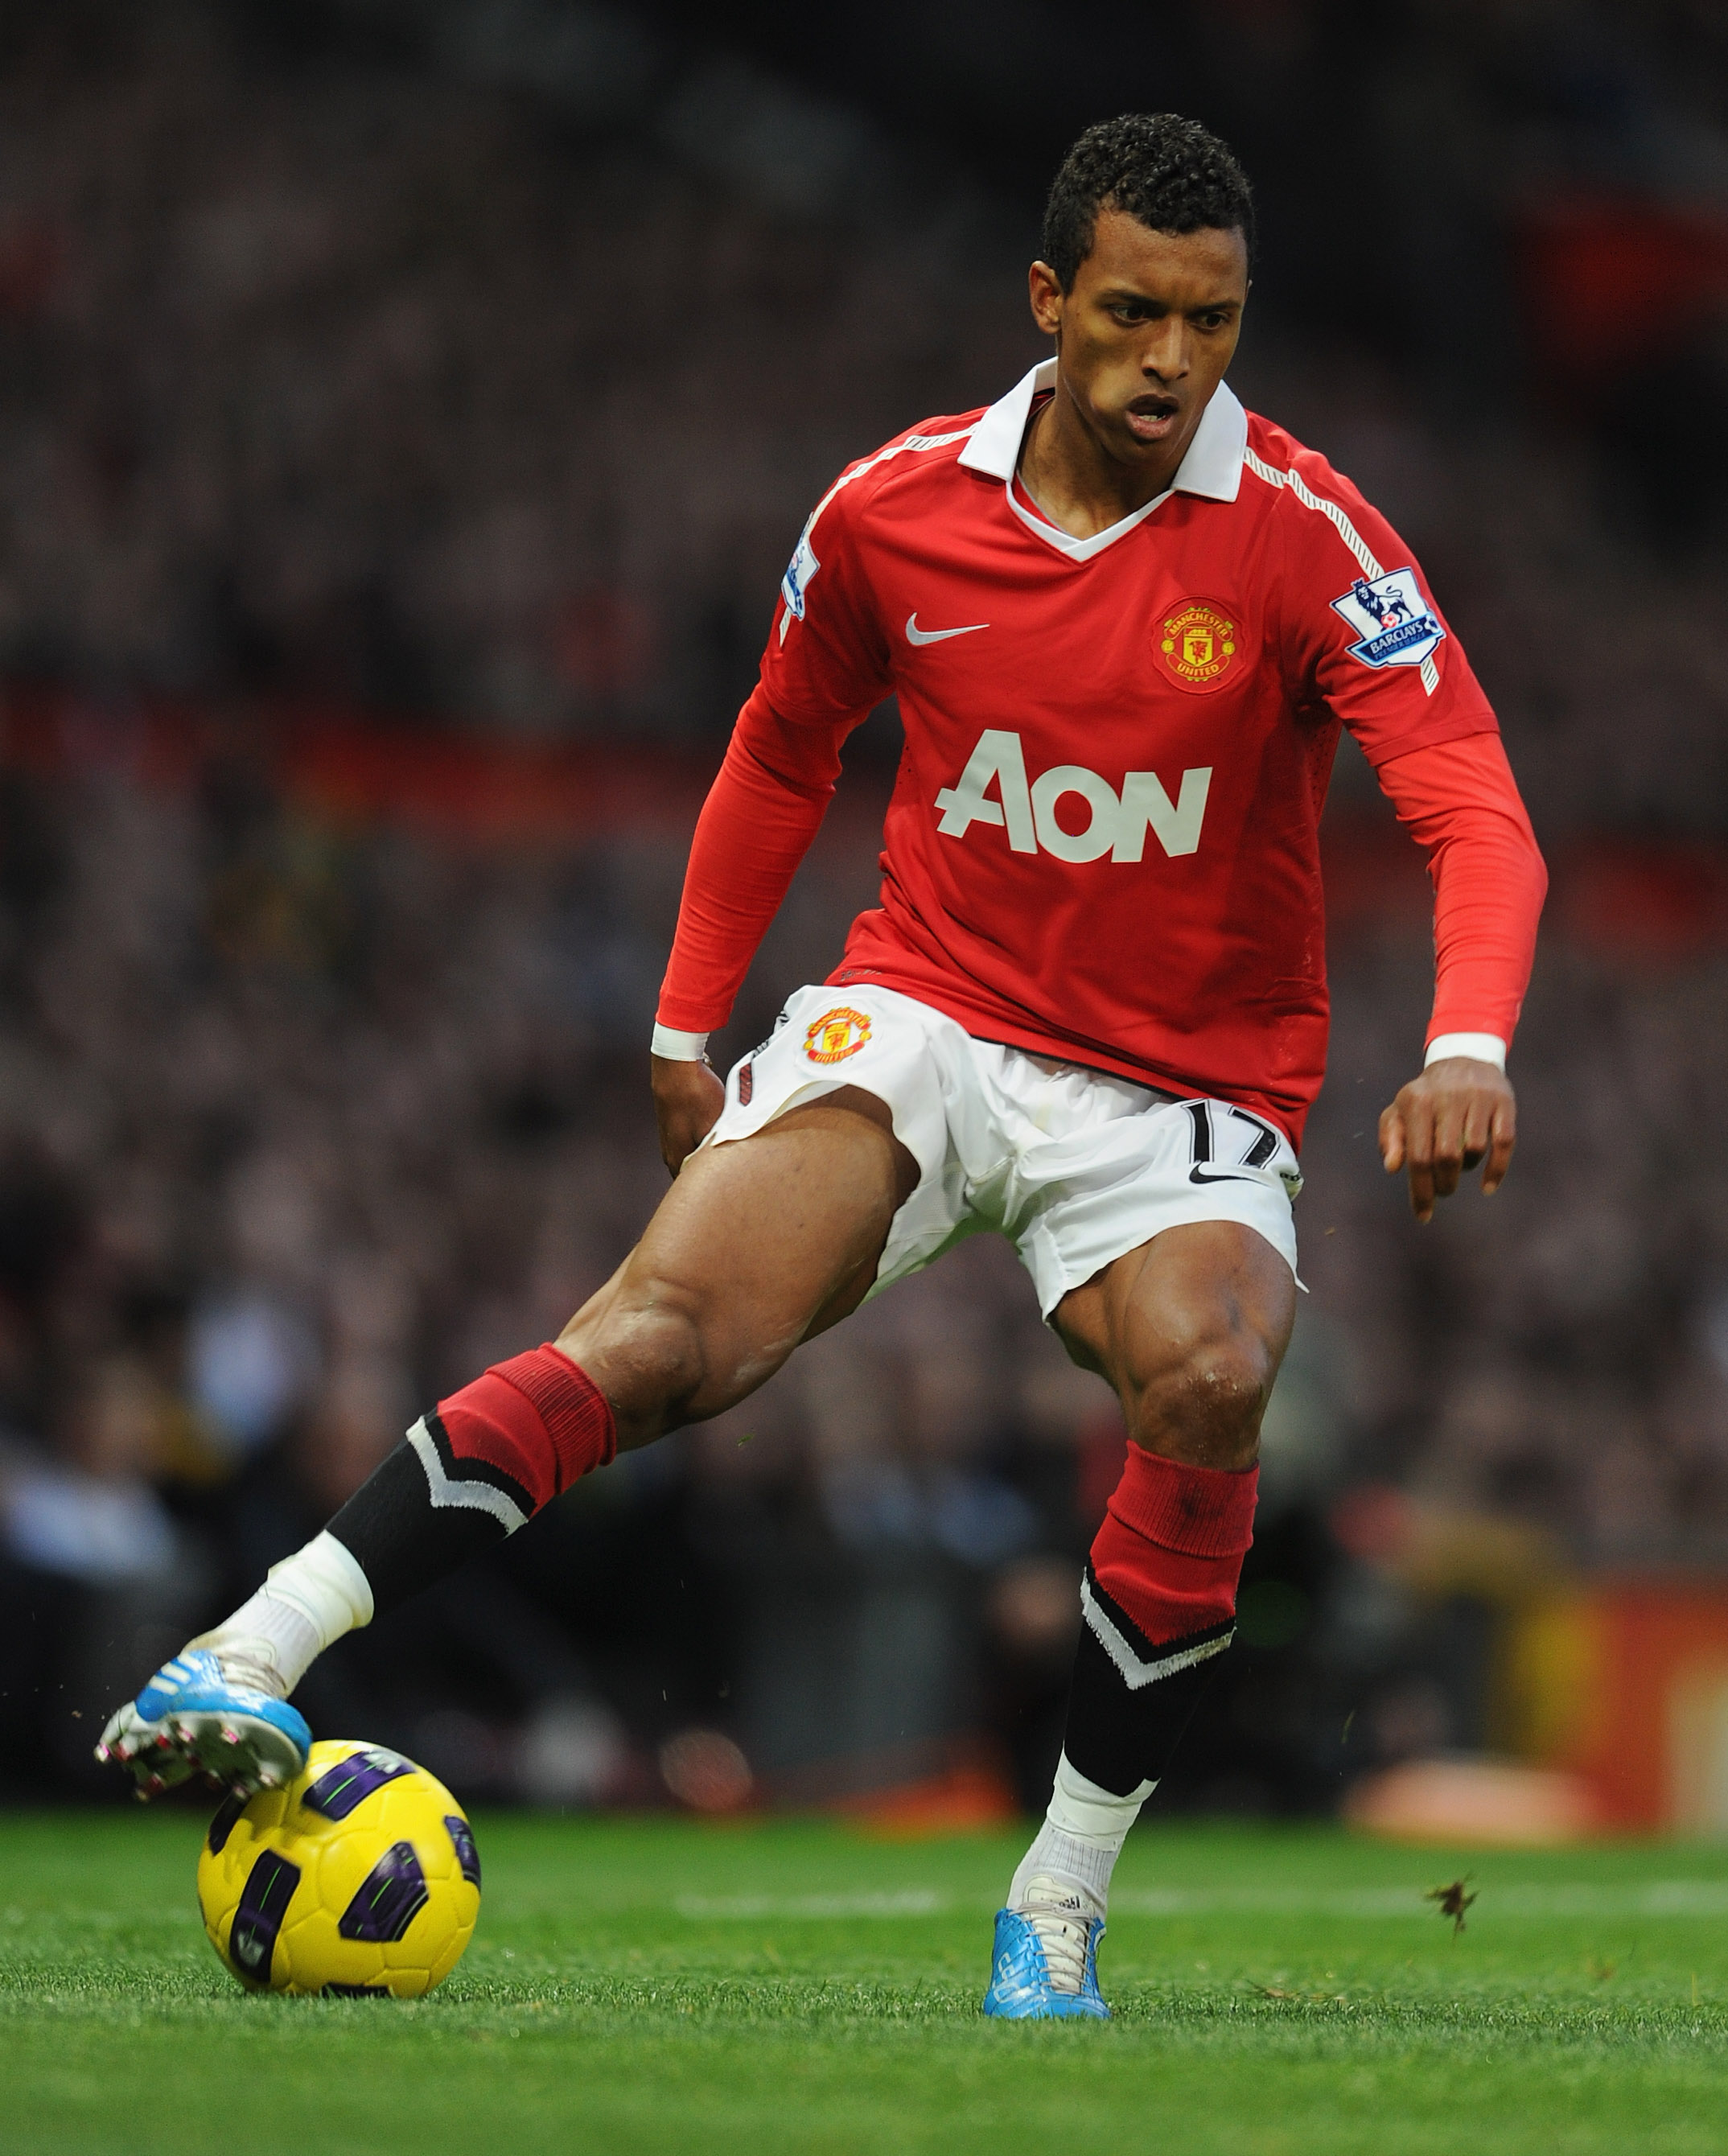 MANCHESTER, ENGLAND - OCTOBER 30: Nani of Manchester United on the ball during the Barclays Premier League match between Manchester United and Tottenham Hotspur at Old Trafford on October 30, 2010 in Manchester, England.  (Photo by Michael Regan/Getty Ima